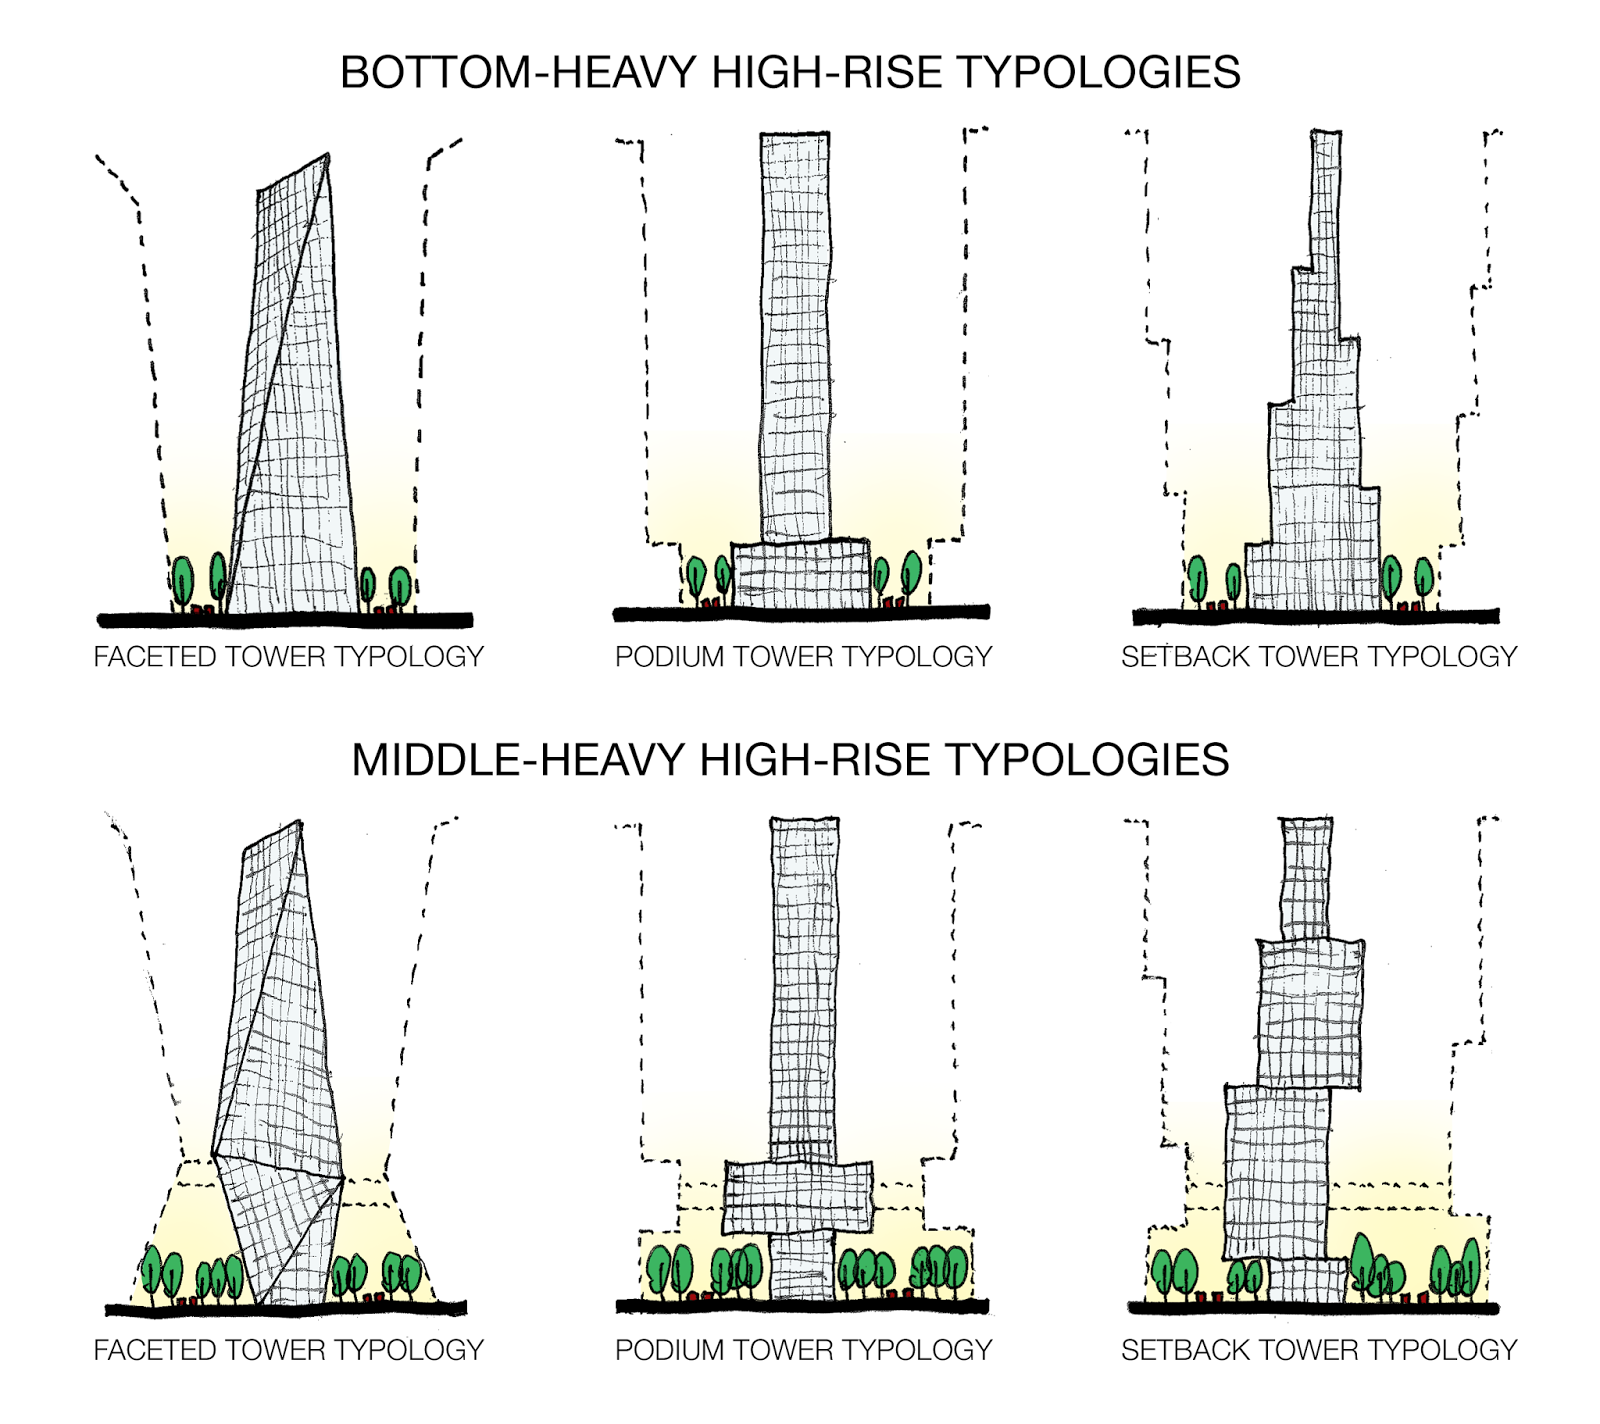 images urban planner in diagram database model visio 2010 a case for building middle heavy cities architecture now i propose that architects and rethink the way we build high rise using typology maximizing light